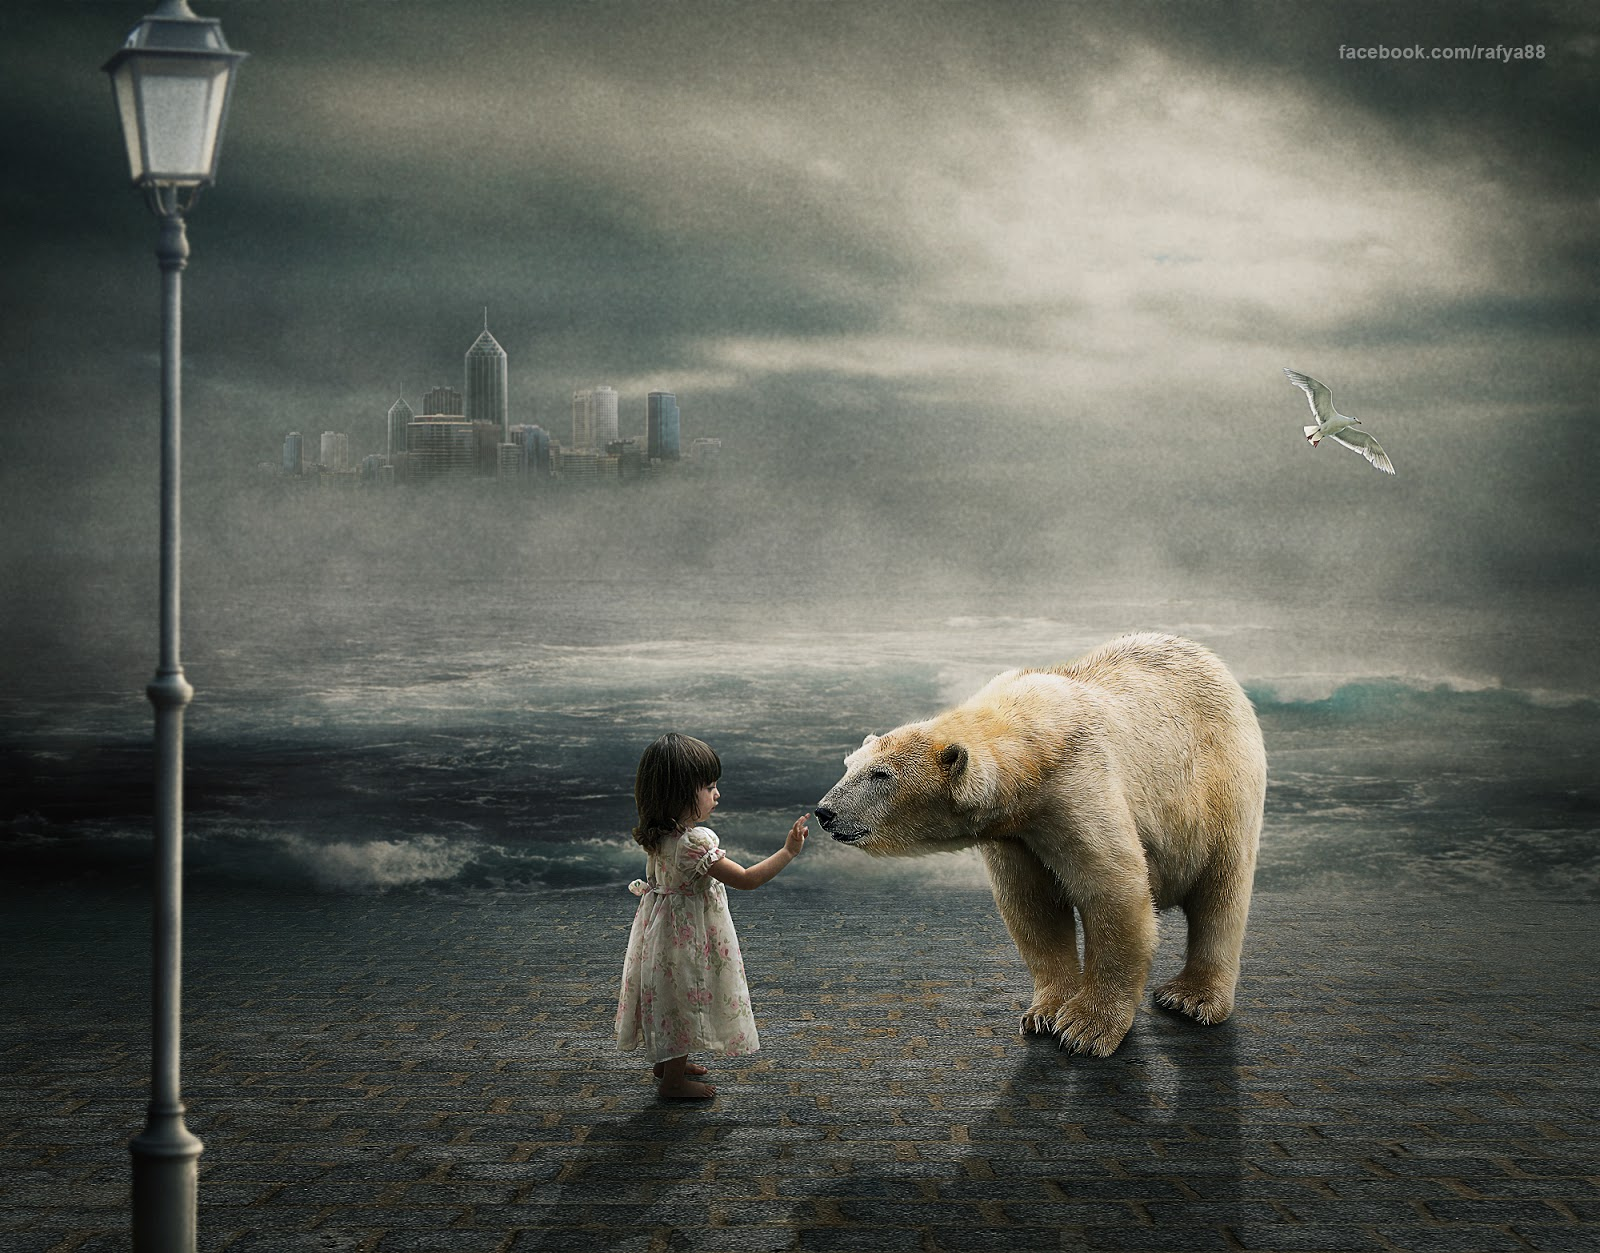 In This Photoshop Tutorial I Will Show You How To Make Child & White Bear  Photo Manipulationpositing We Will Create A Nice Background By Bining Sea